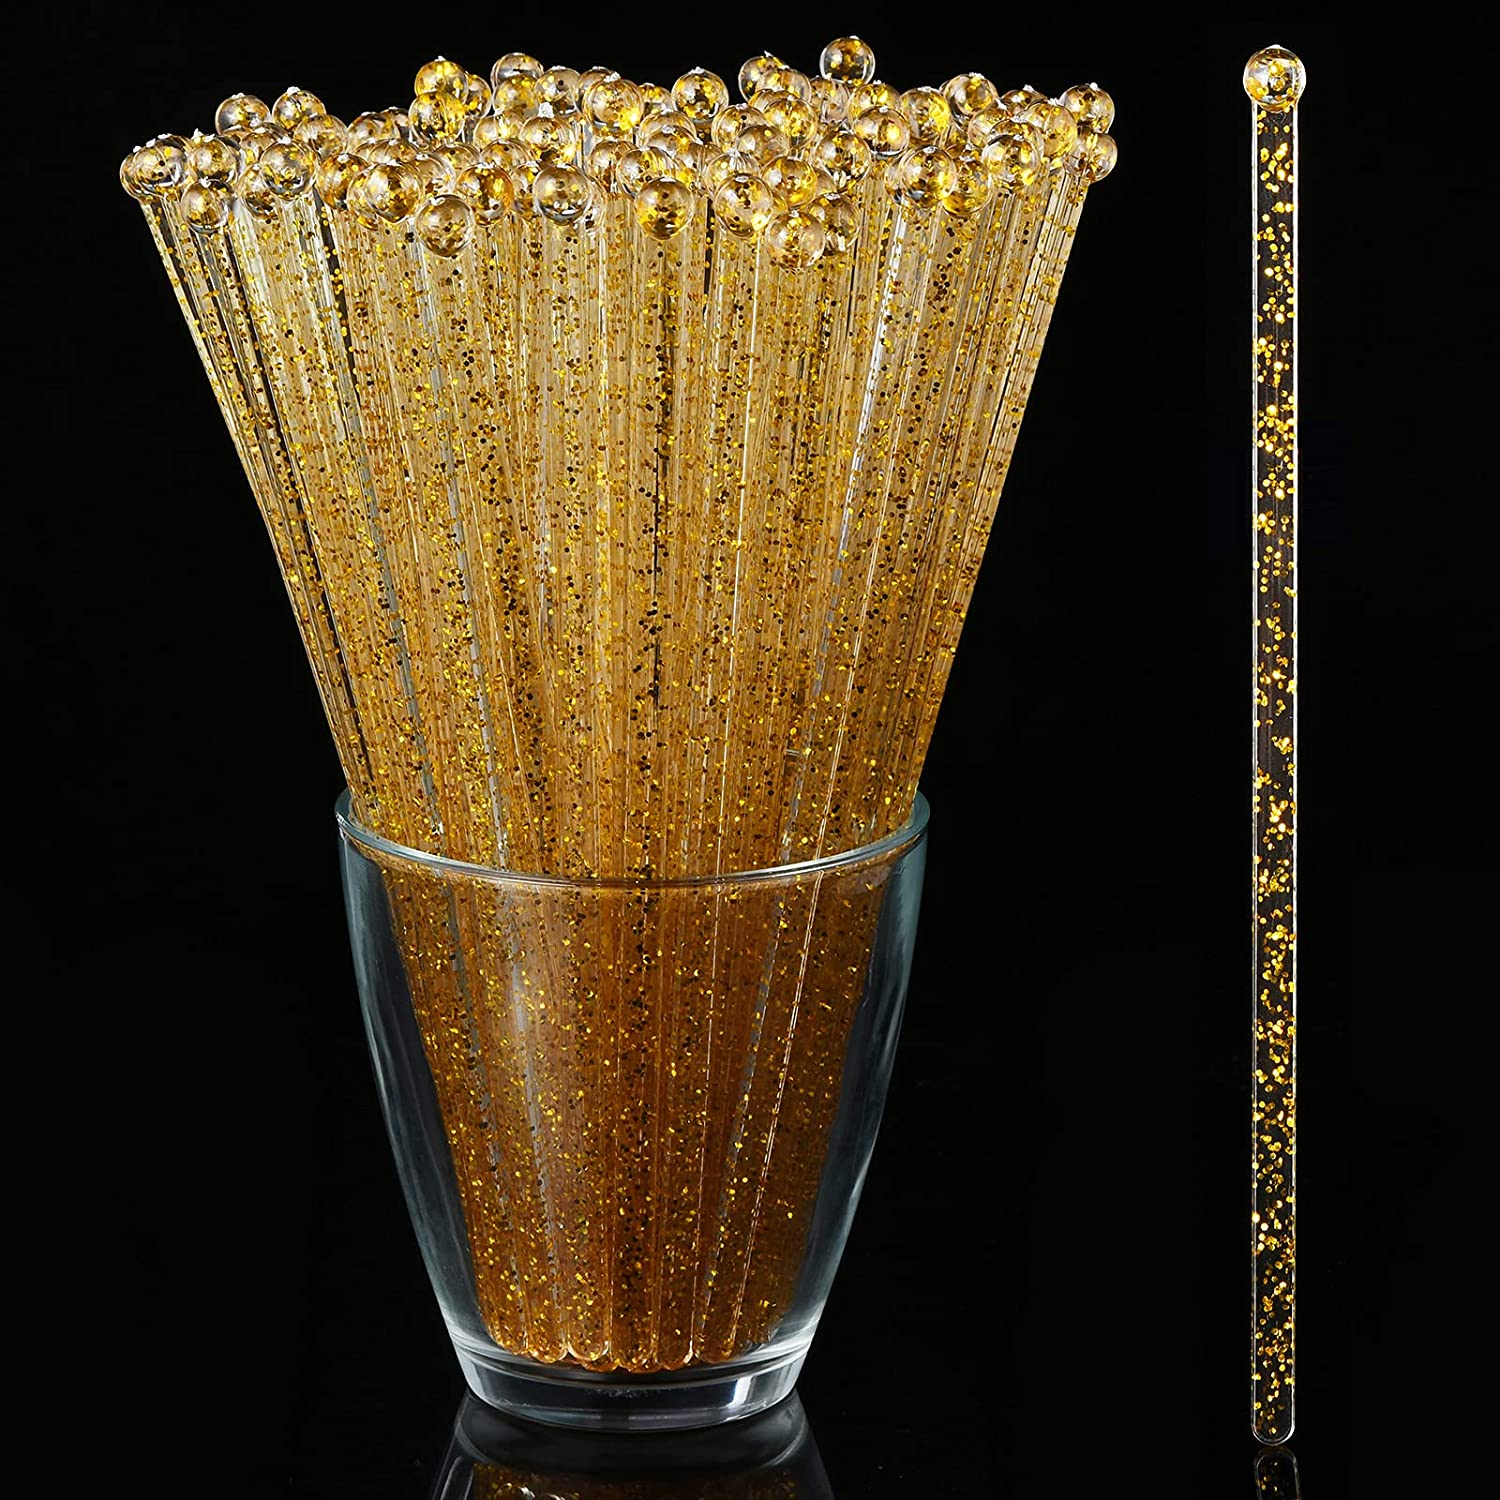 ALINK 125-Pack Gold Glitter Plastic Swizzle Sticks, Crystal Cake Pops, Cocktail Coffee Drink Stirrers, 7.24 Inch : Home & Kitchen